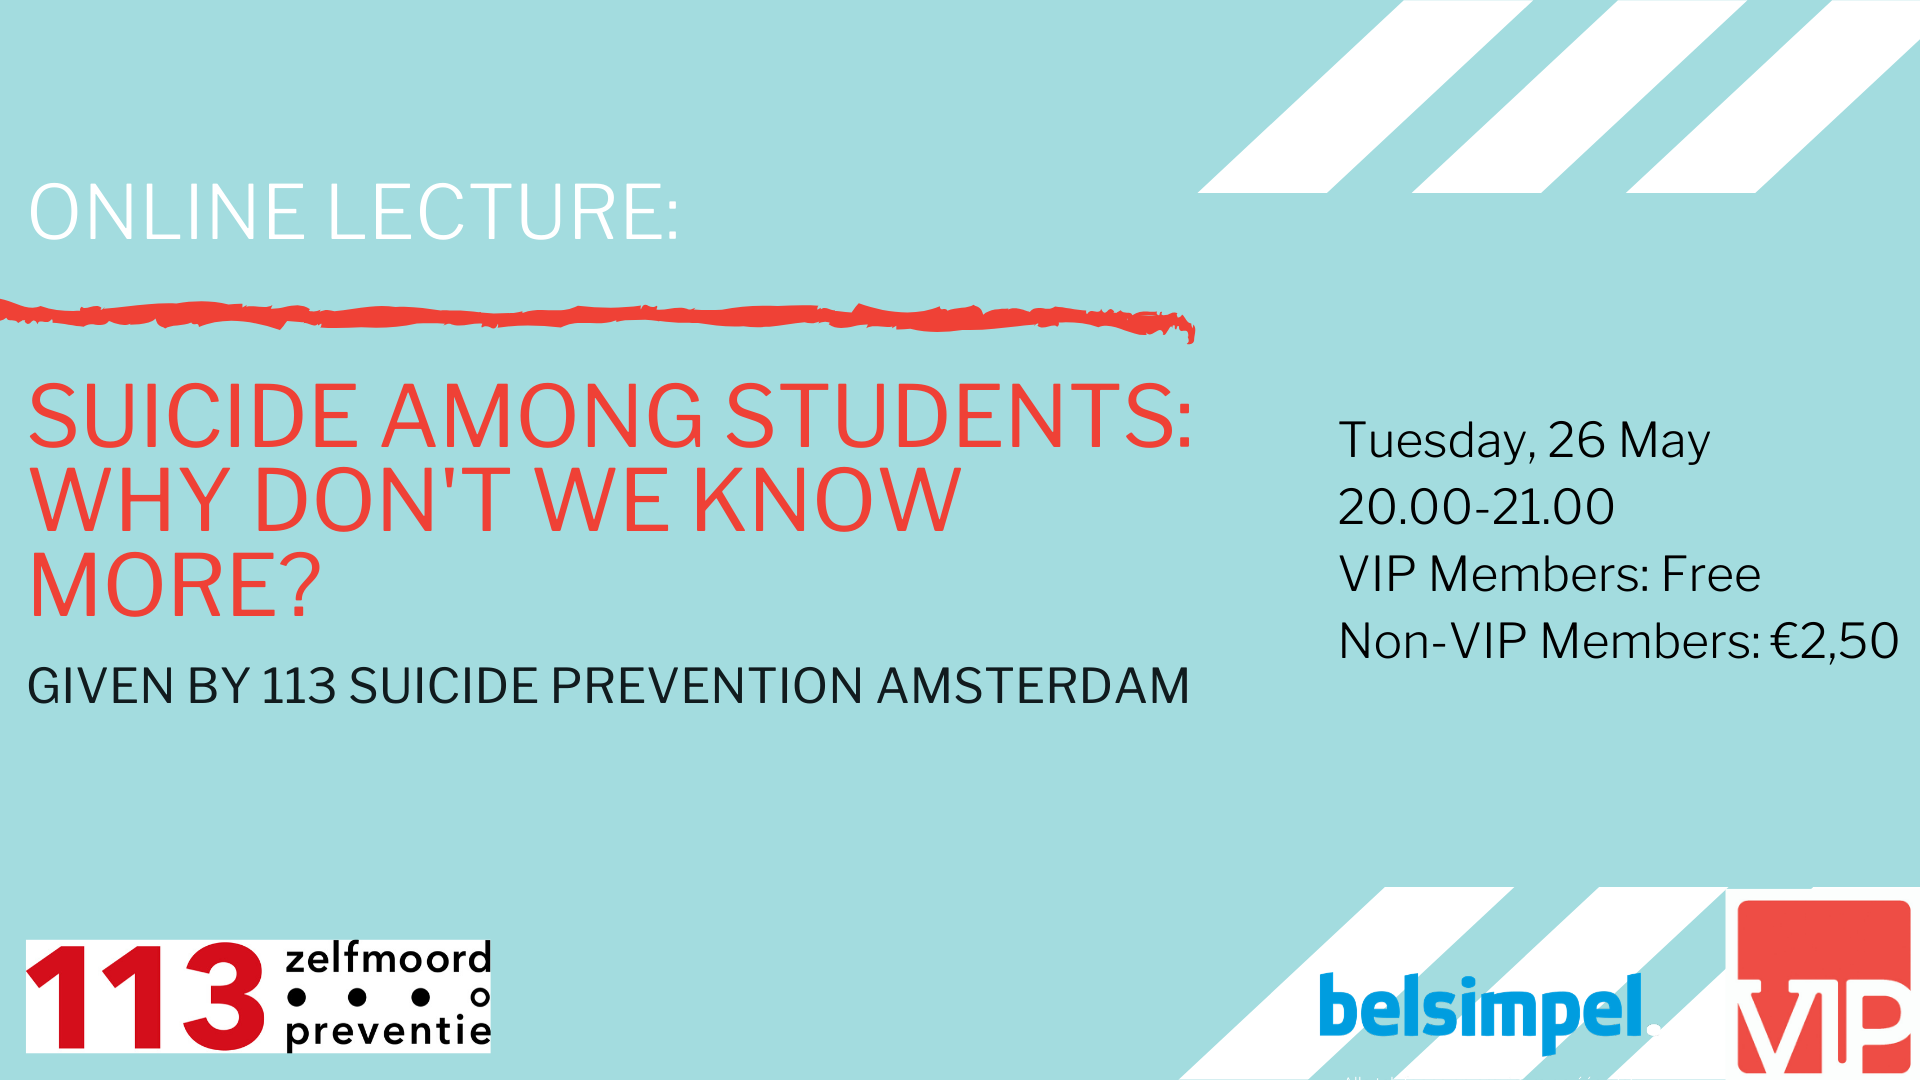 Online Lecture: Suicide among students: why don't we know more?